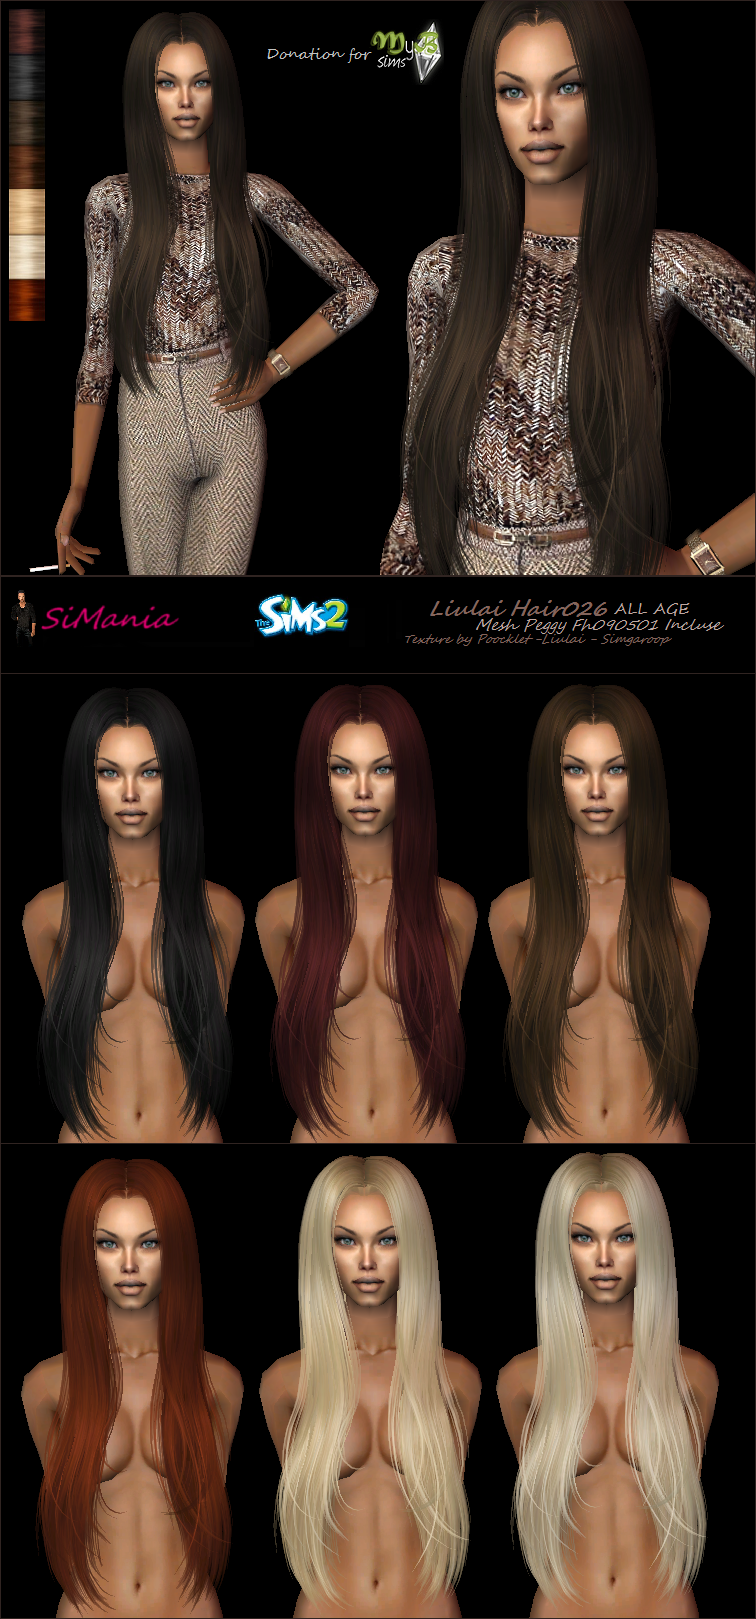 Mod the sims update simania free download sims 2 - Sims 2 downloads mobel ...